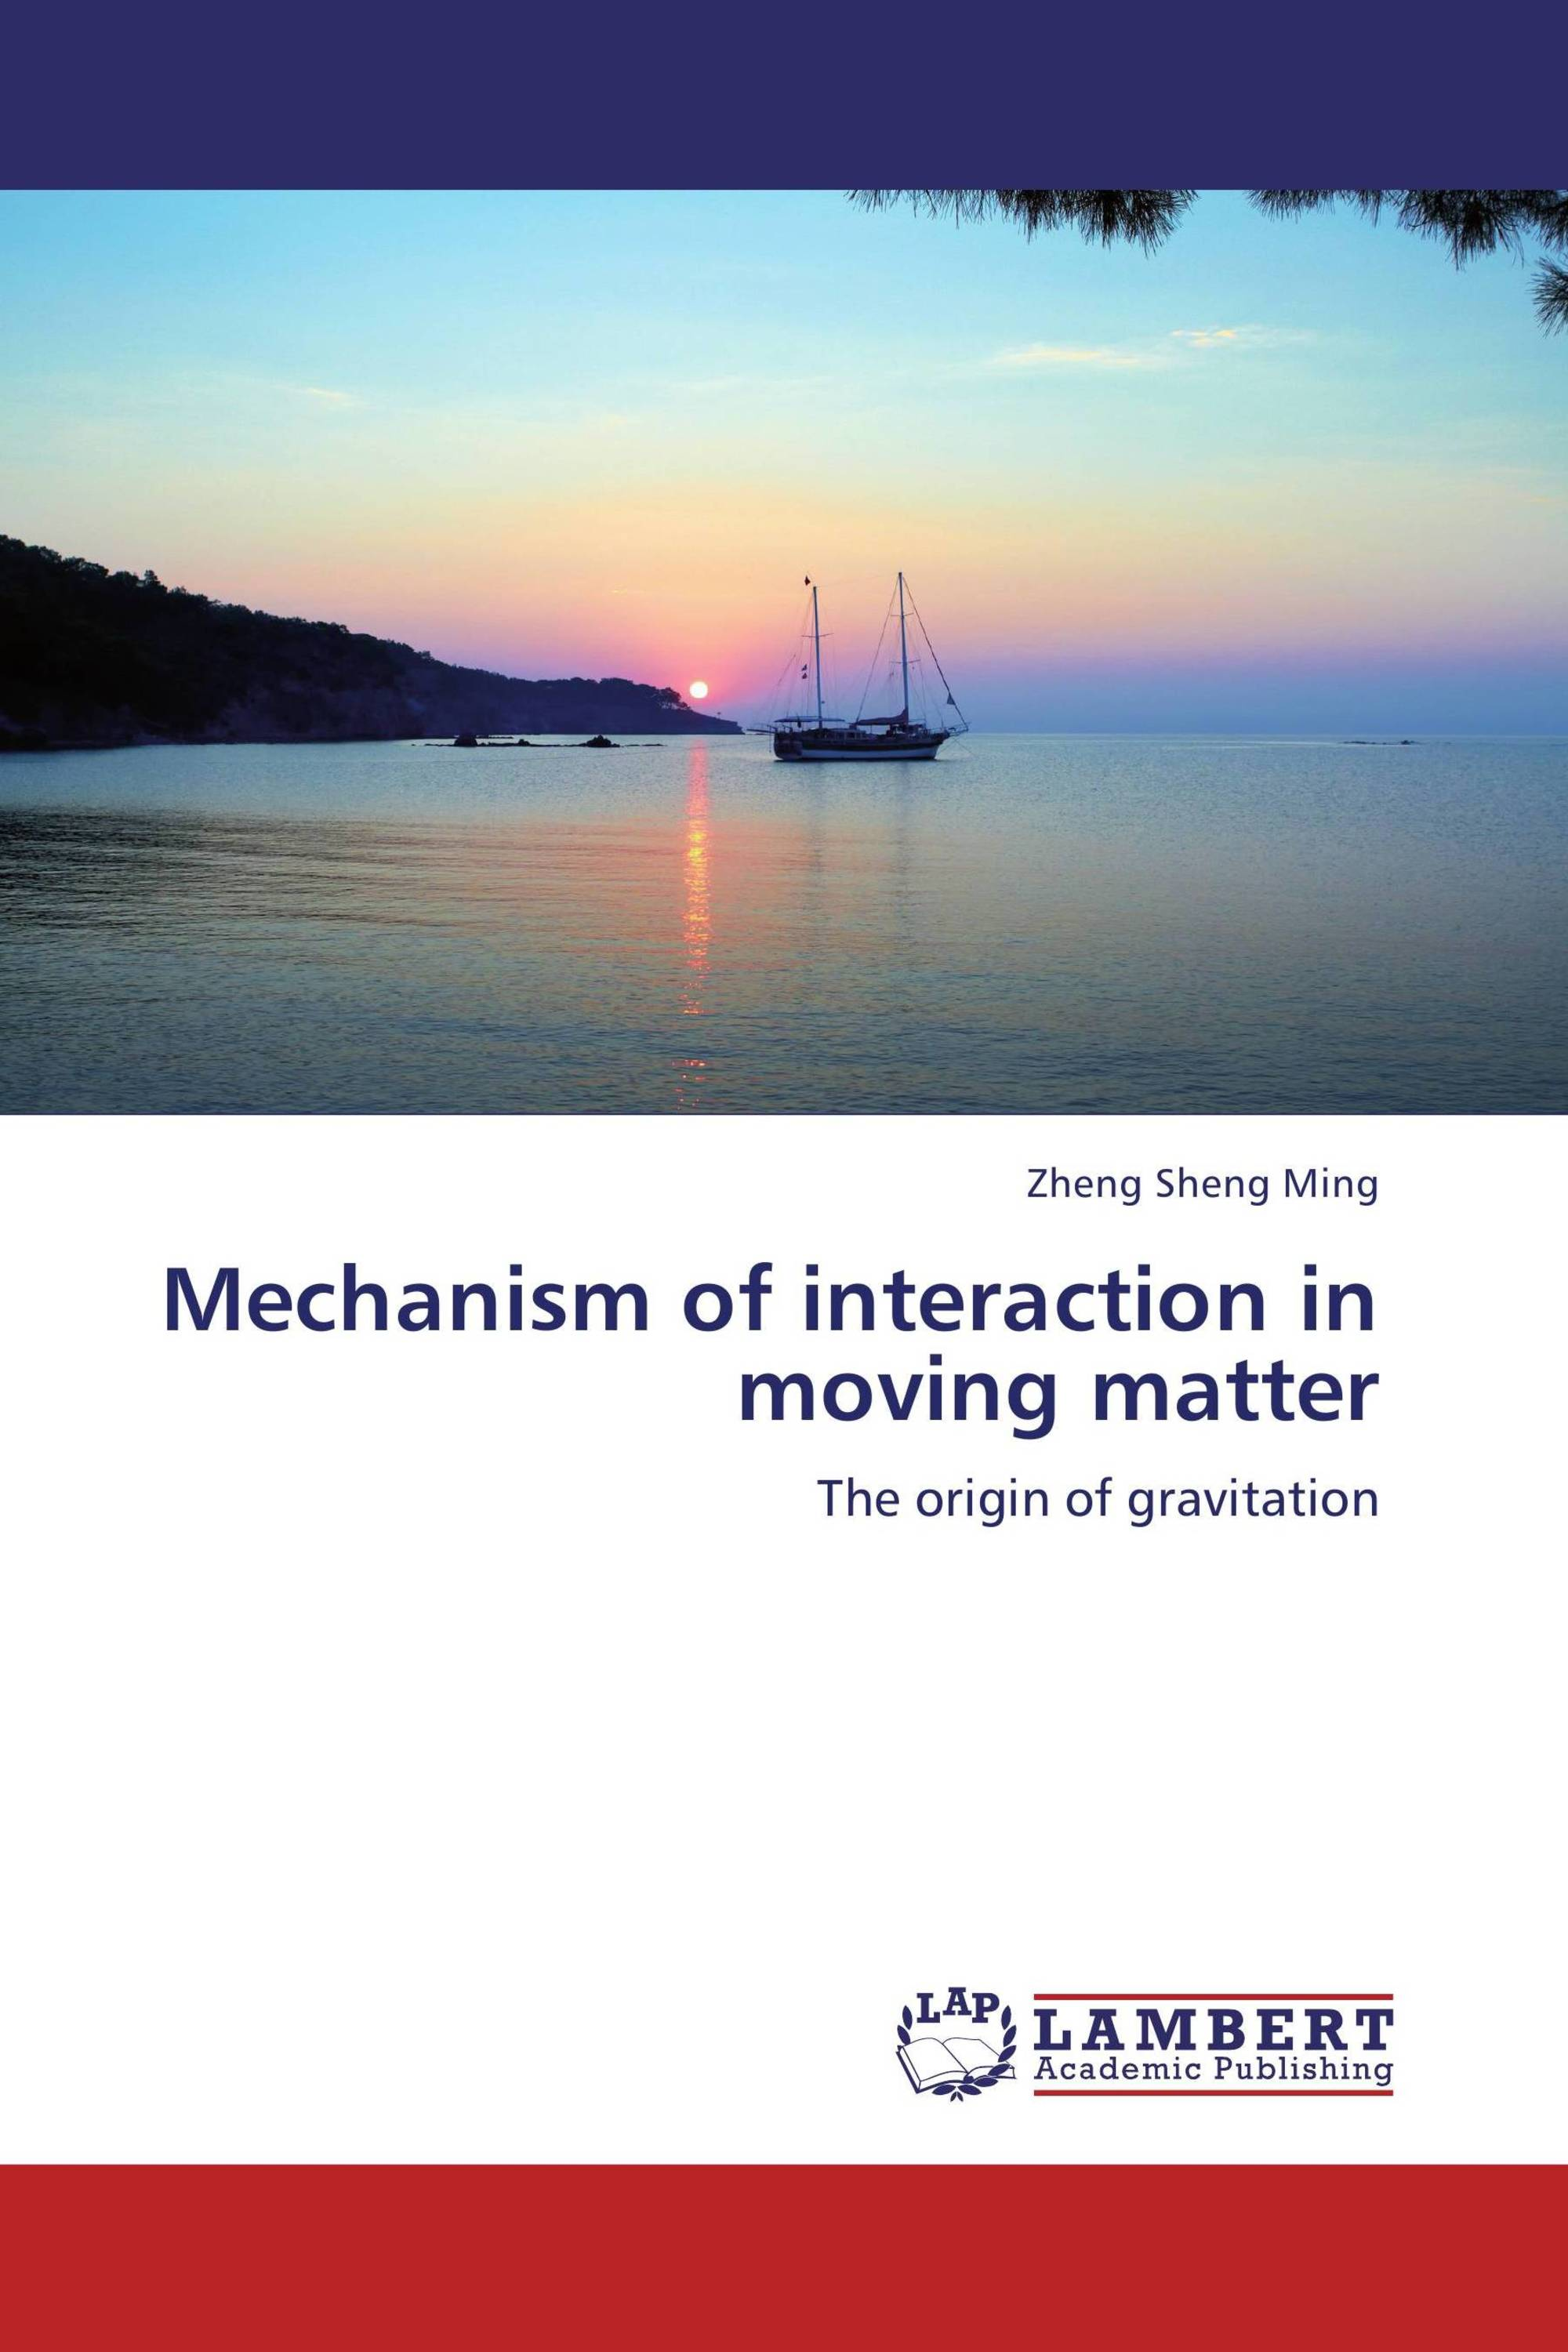 Mechanism of interaction in moving matter